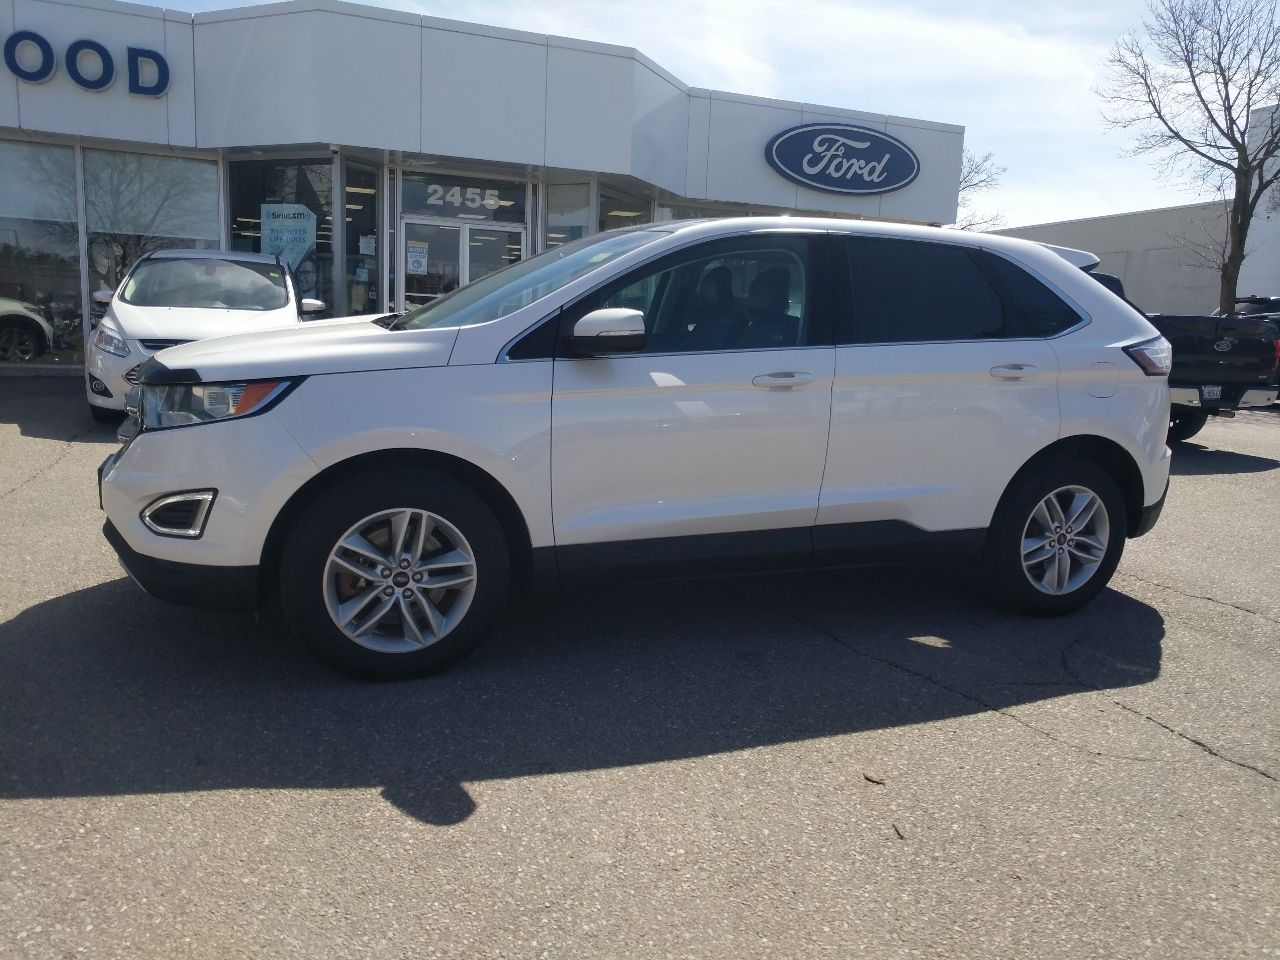 2017 Ford Edge Image